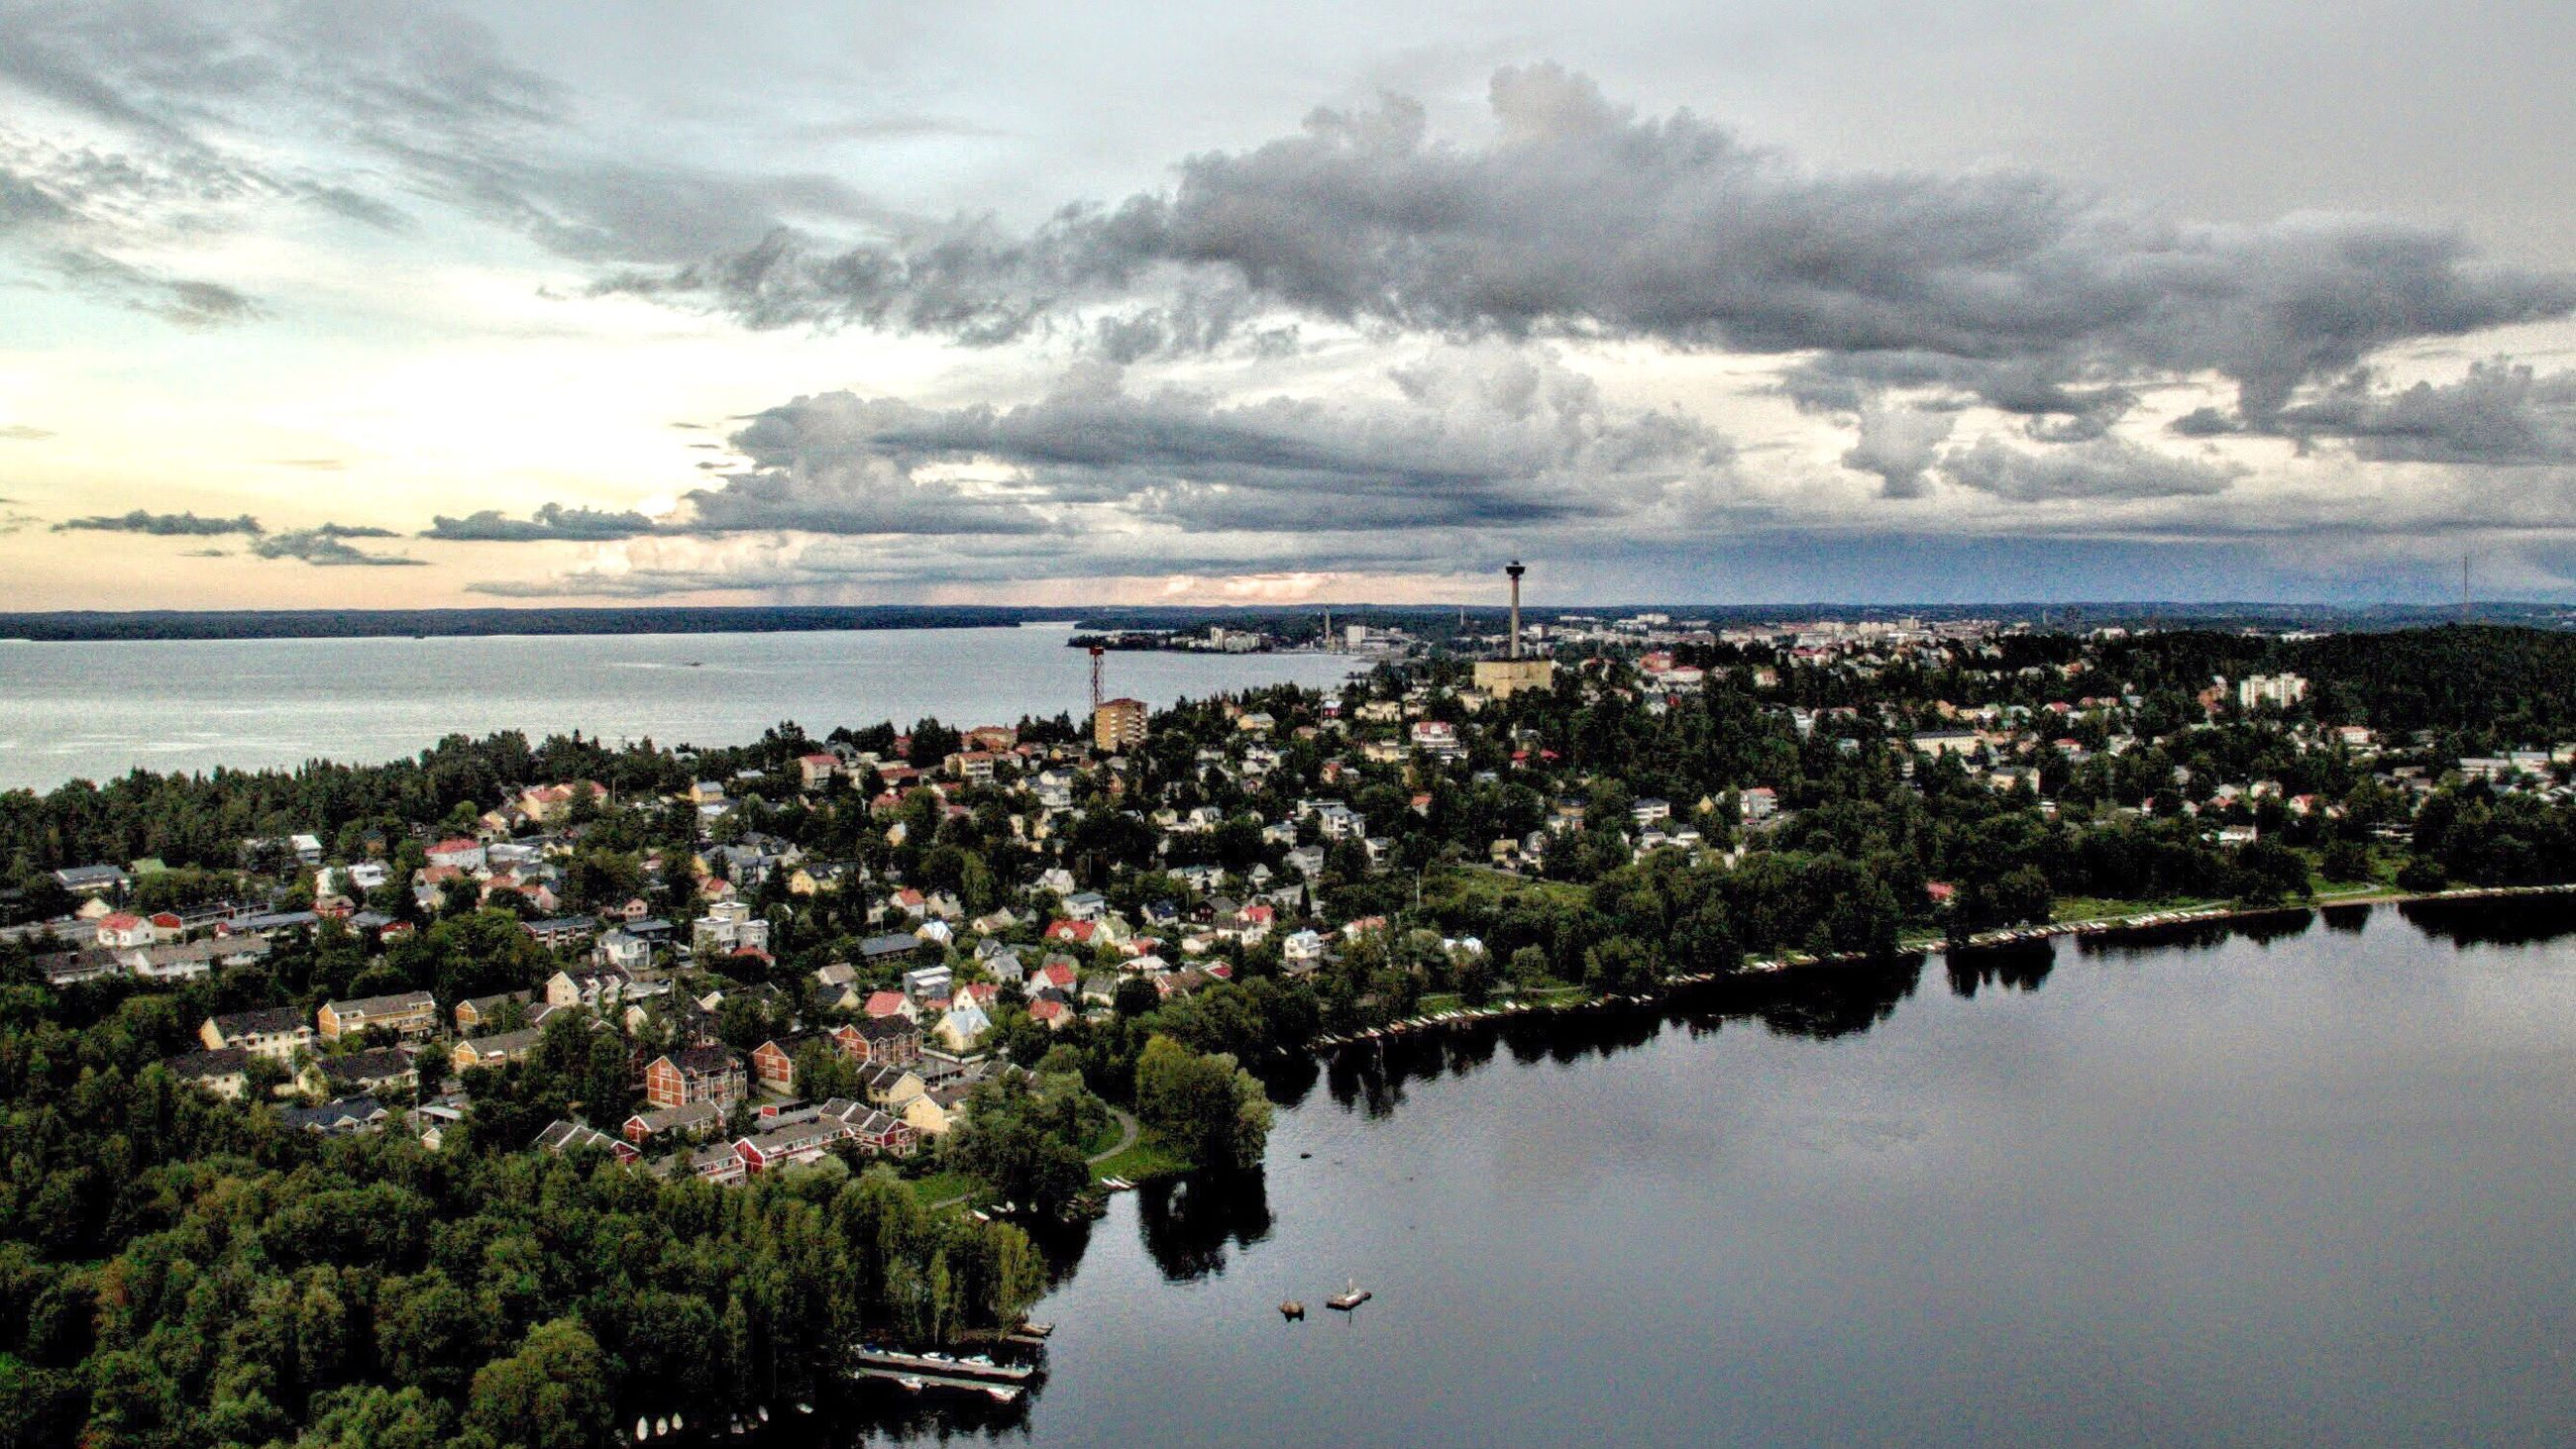 water, sky, built structure, architecture, sea, tree, building exterior, cloud - sky, river, cloud, waterfront, nature, horizon over water, flower, cloudy, growth, plant, city, day, high angle view